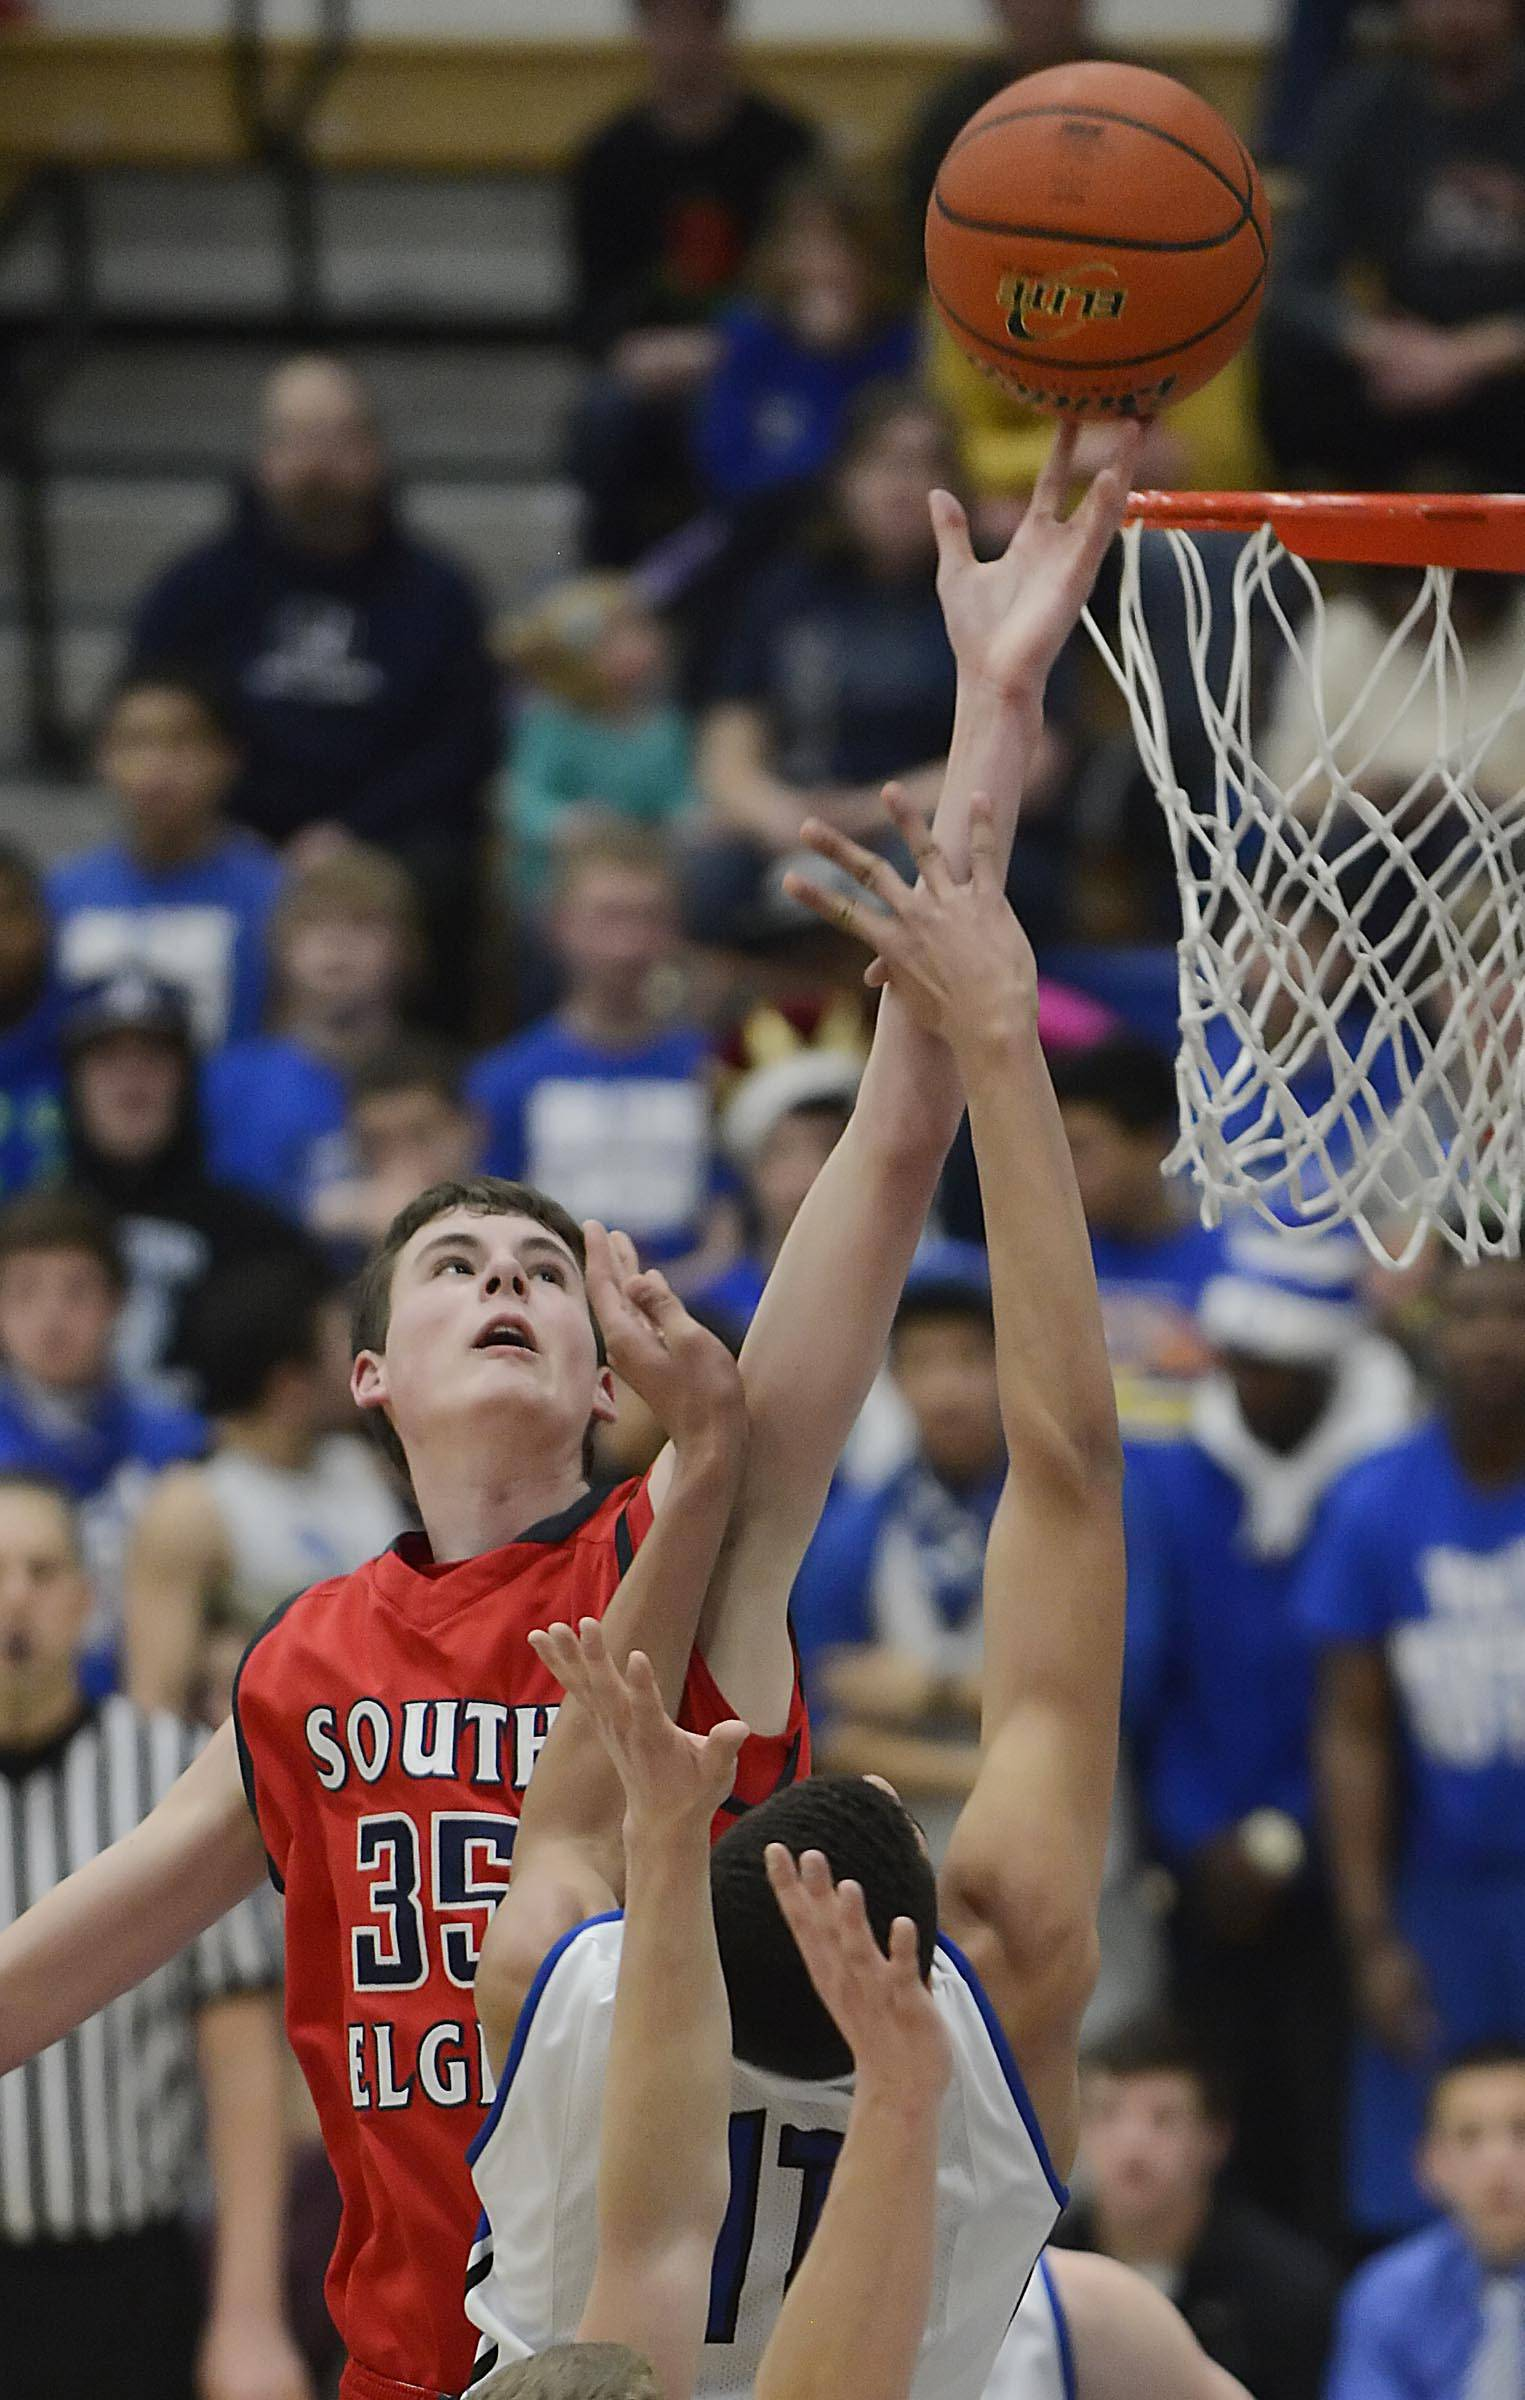 South Elgin's Tyler Hankins stretches for a rebound over Larkin's Christian Negron Tuesday in the St. Charles North regional game.